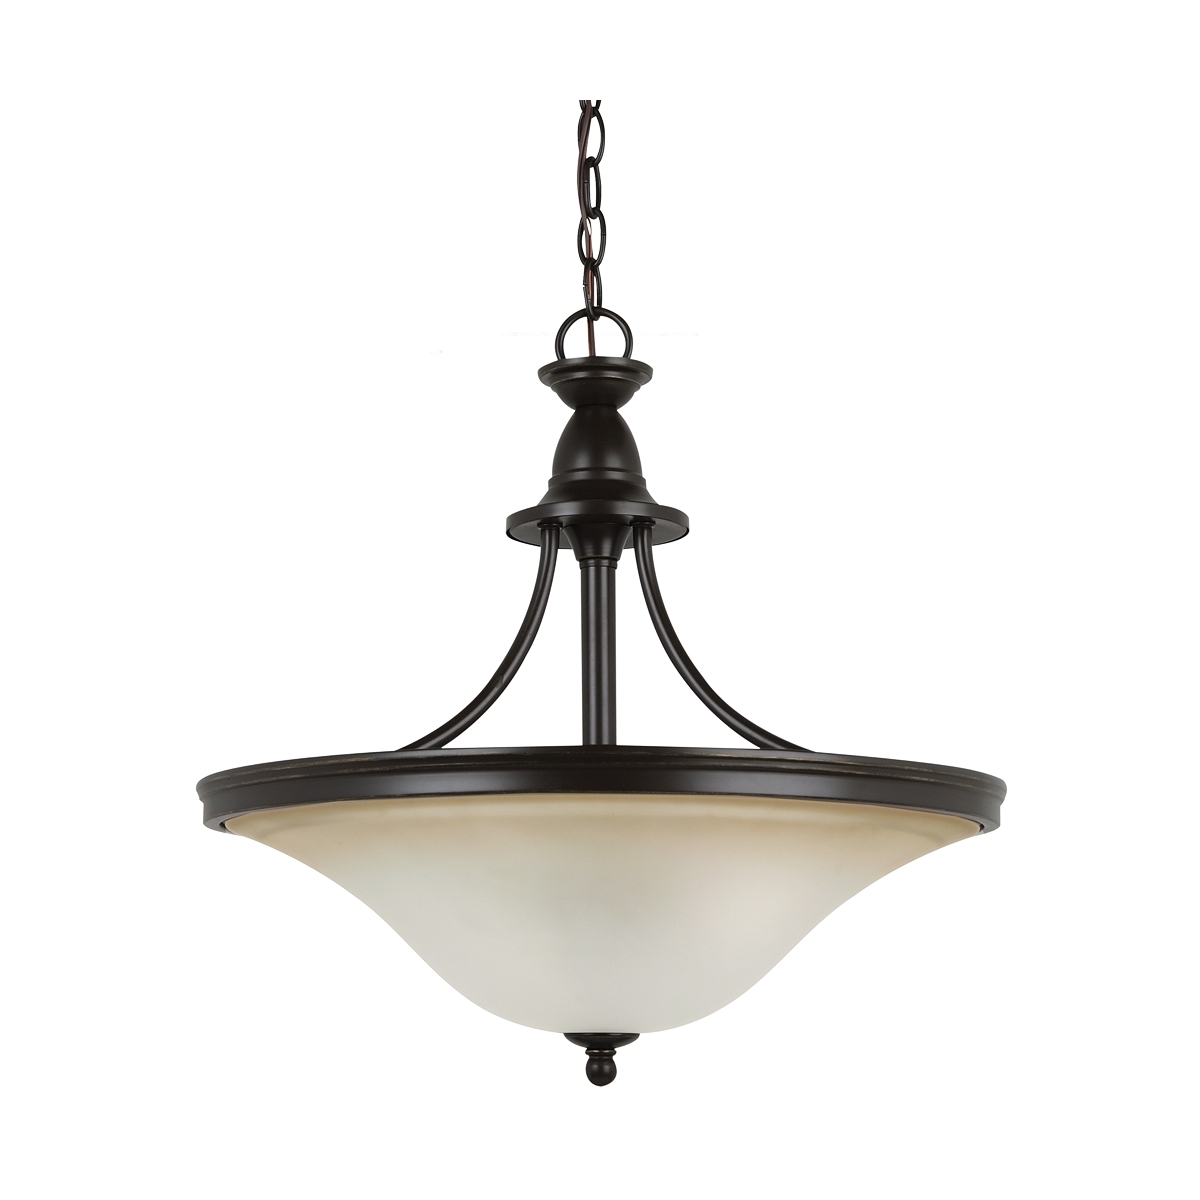 Sea Gull Lighting Gladstone 3 Light Pendant Up Light in Heirloom Bronze 65851-782 photo